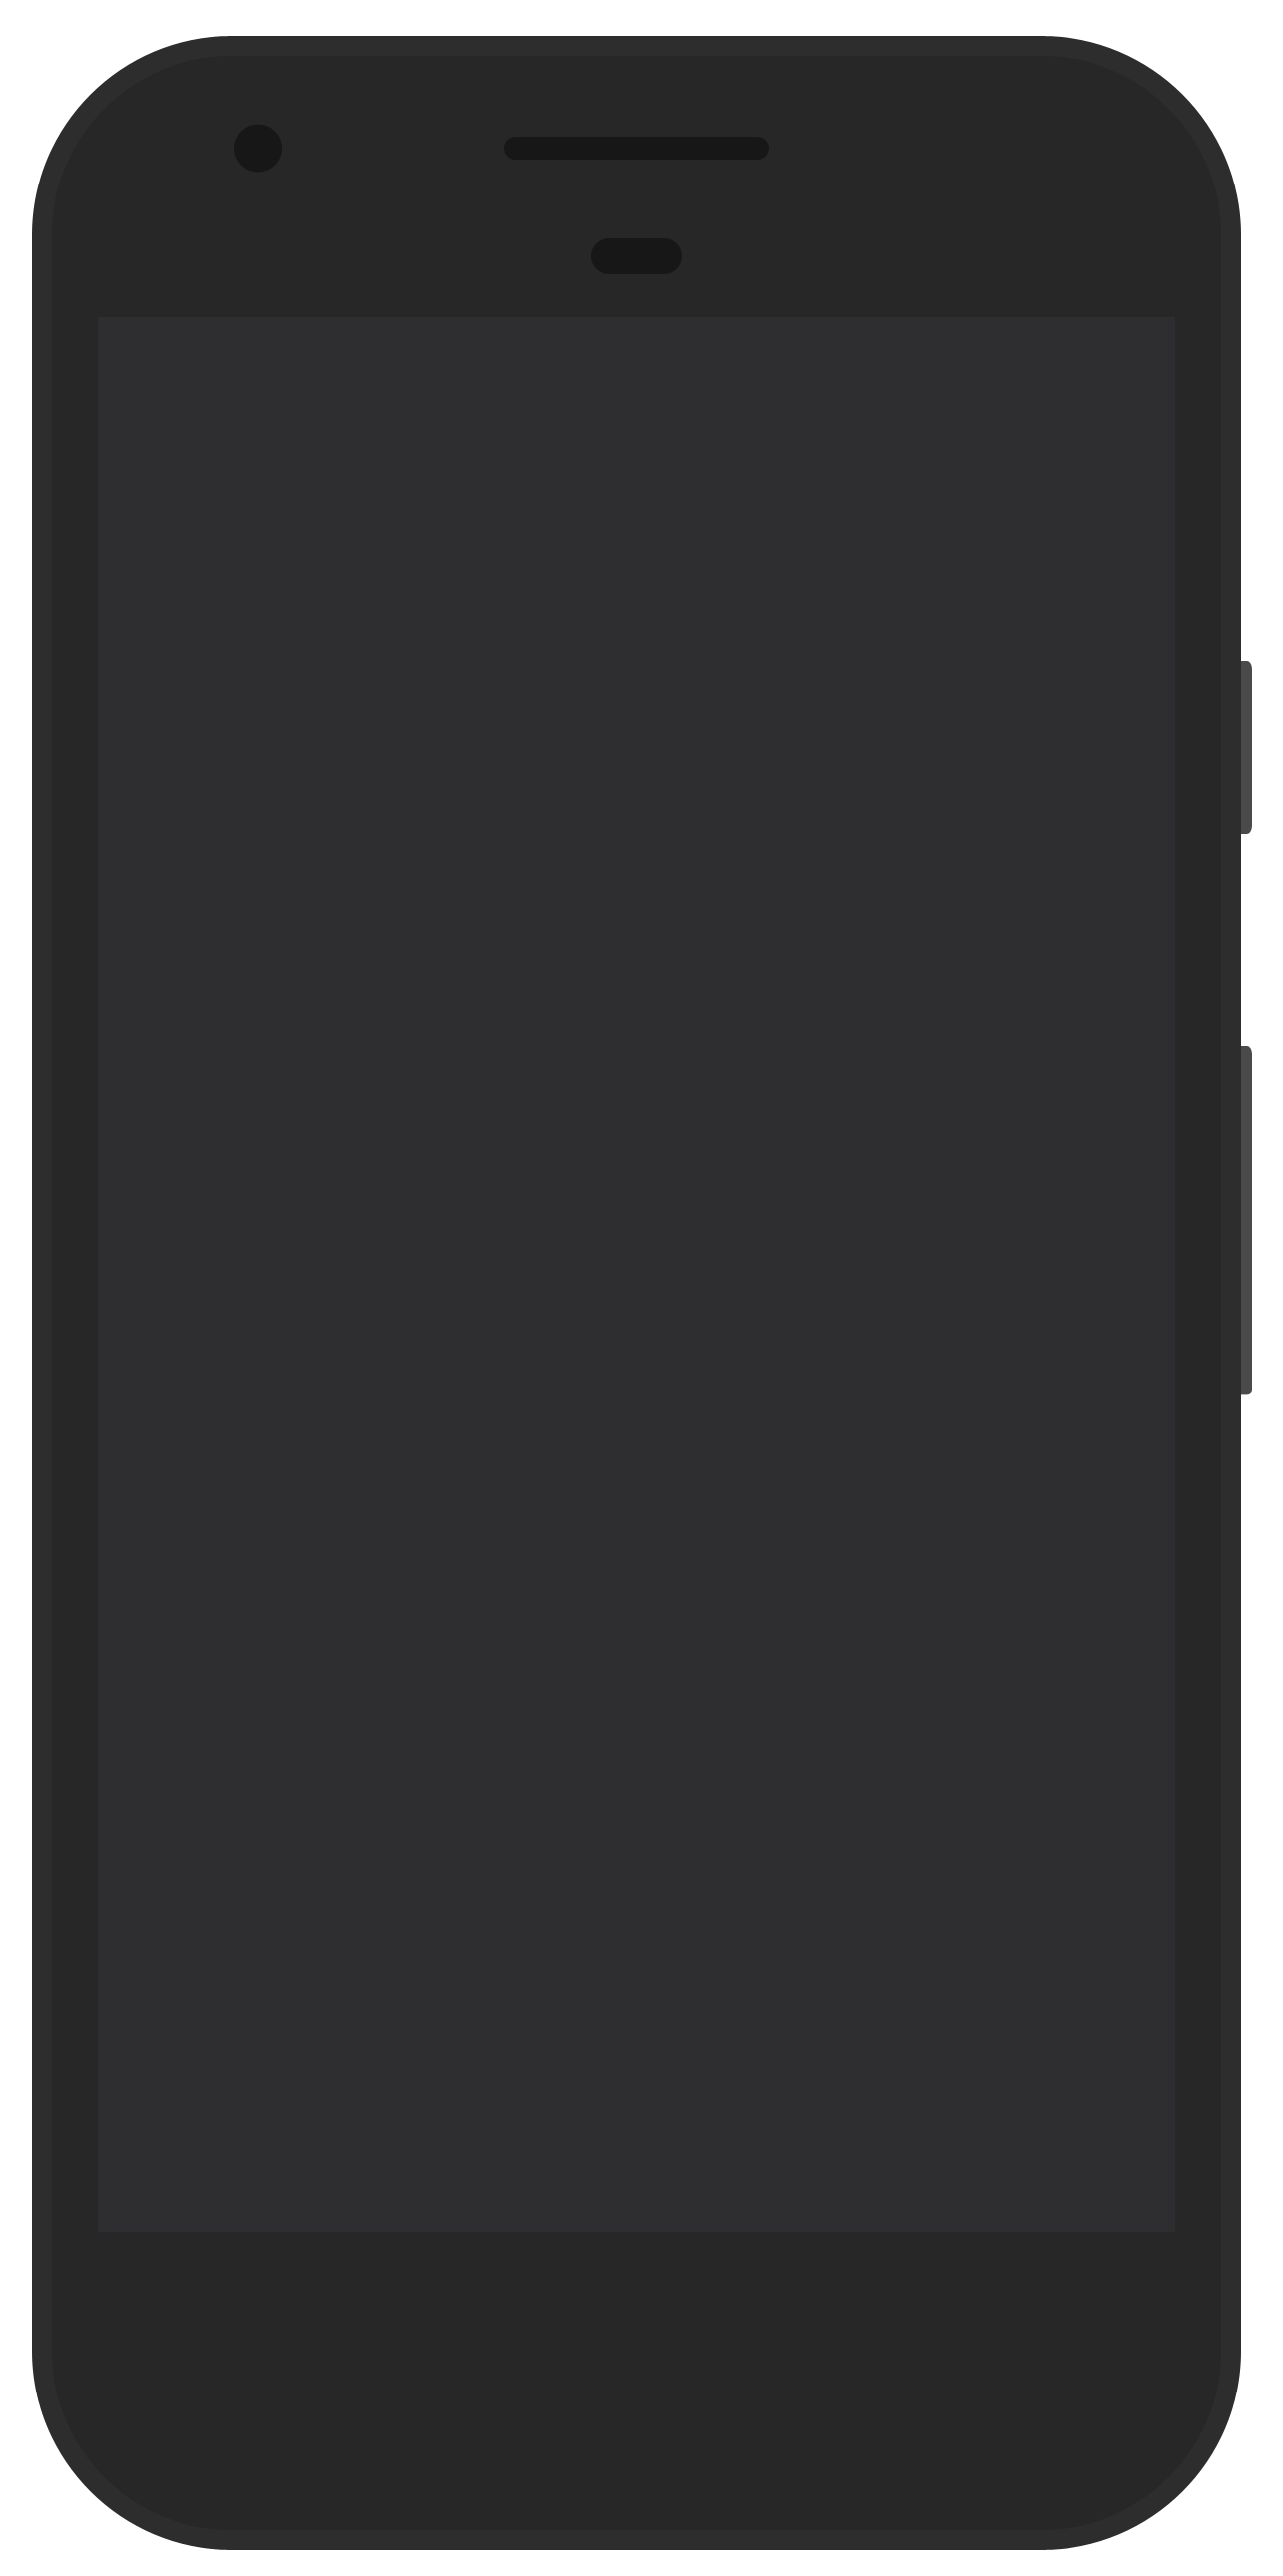 Google pixel png. File psd wikimedia commons